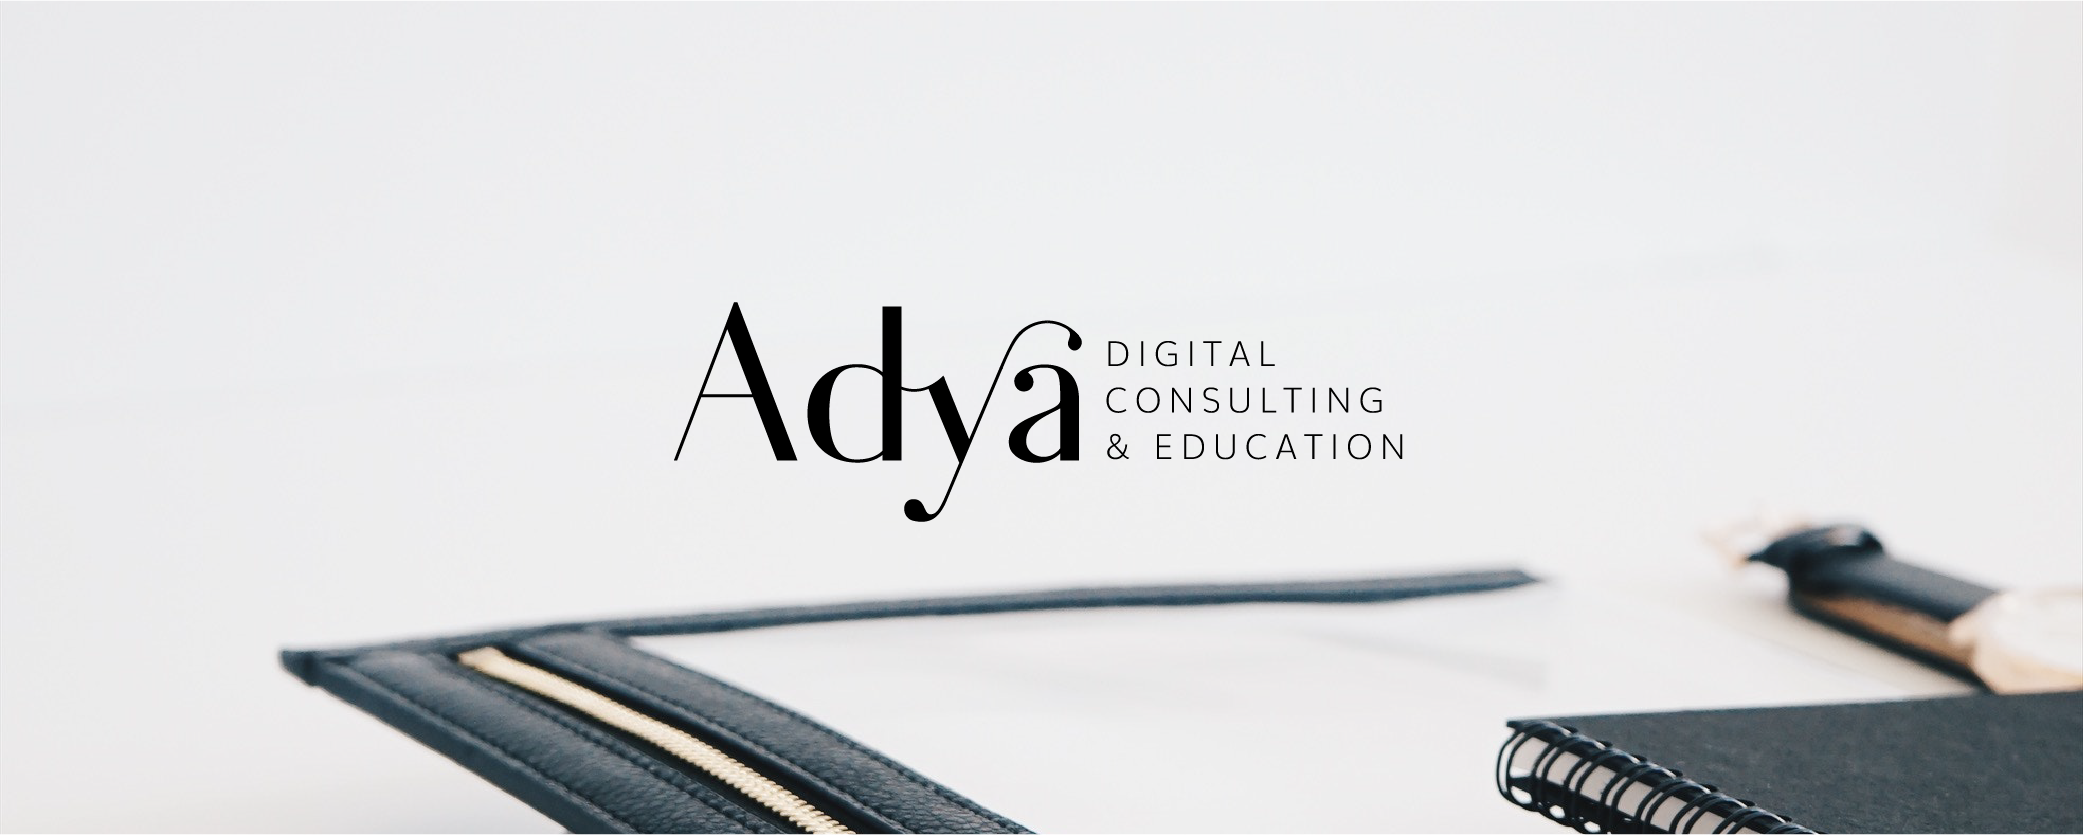 Adya Digital Consulting and Education logo on a photo of notebooks